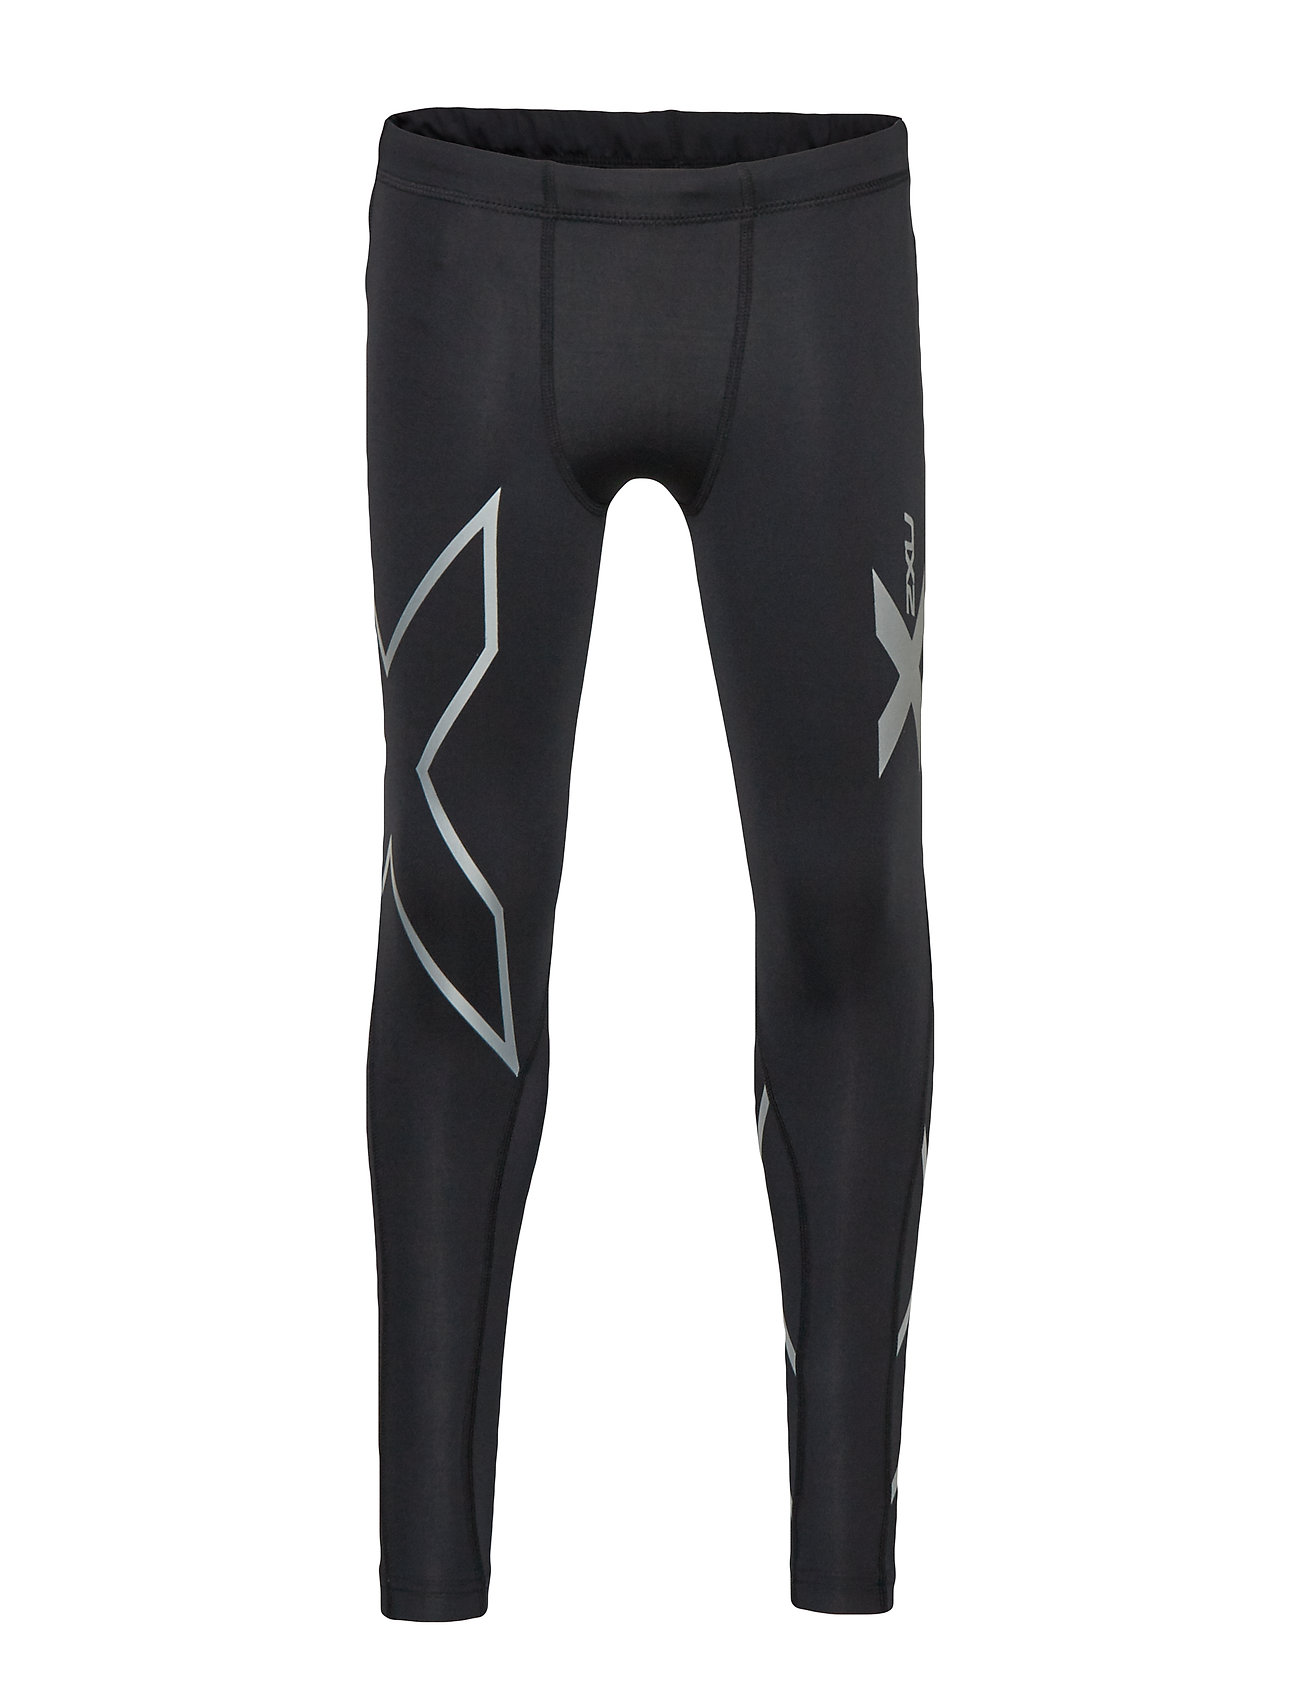 2XU Boys Compression Tights-Youth - BLACK/BLACK